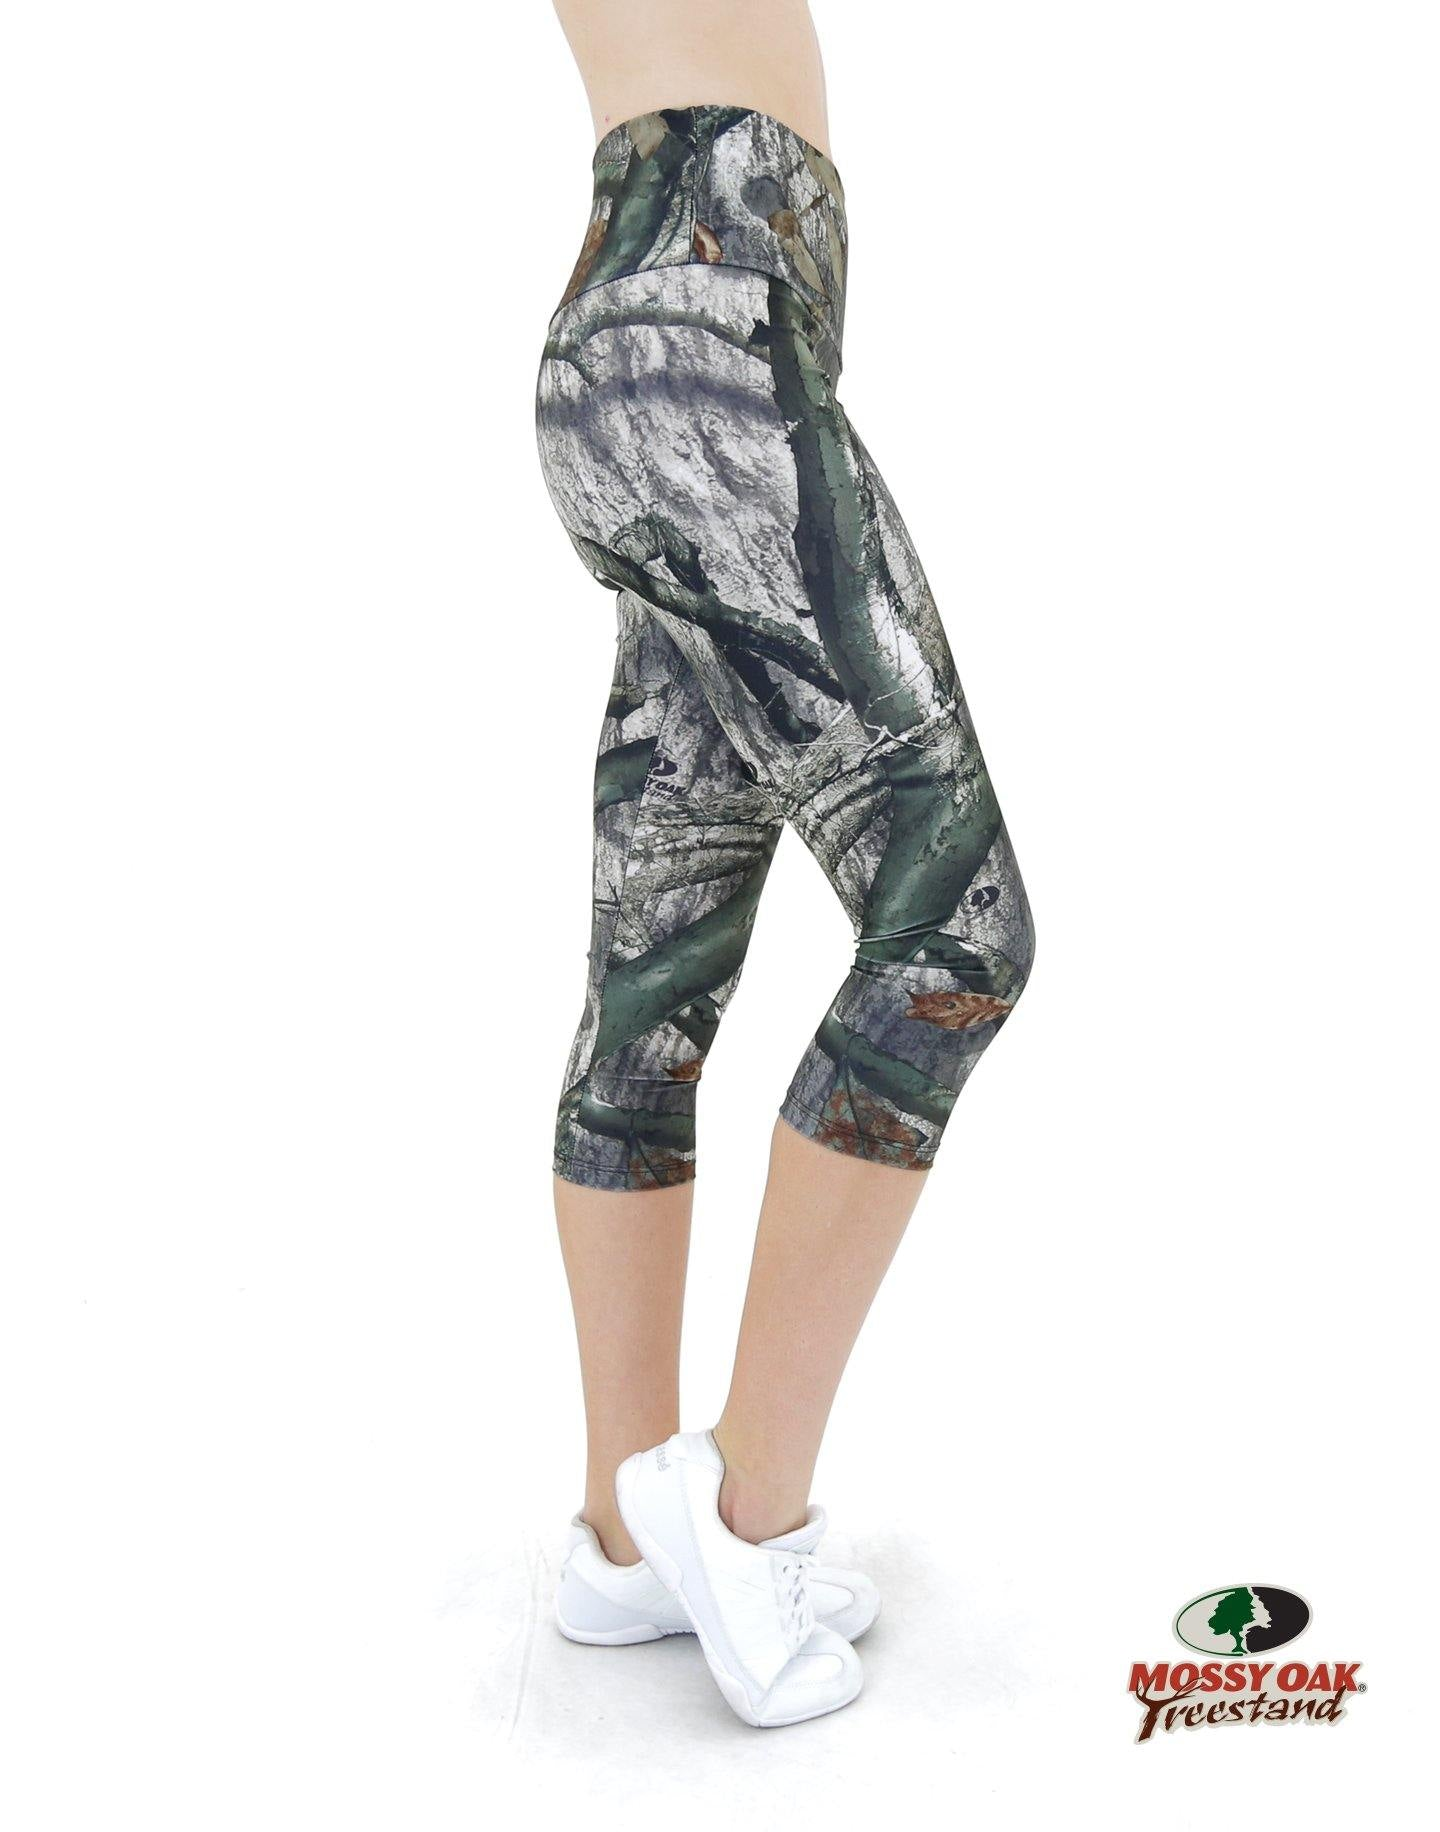 Apsara Leggings High Waist Capri, Mossy Oak Treestand